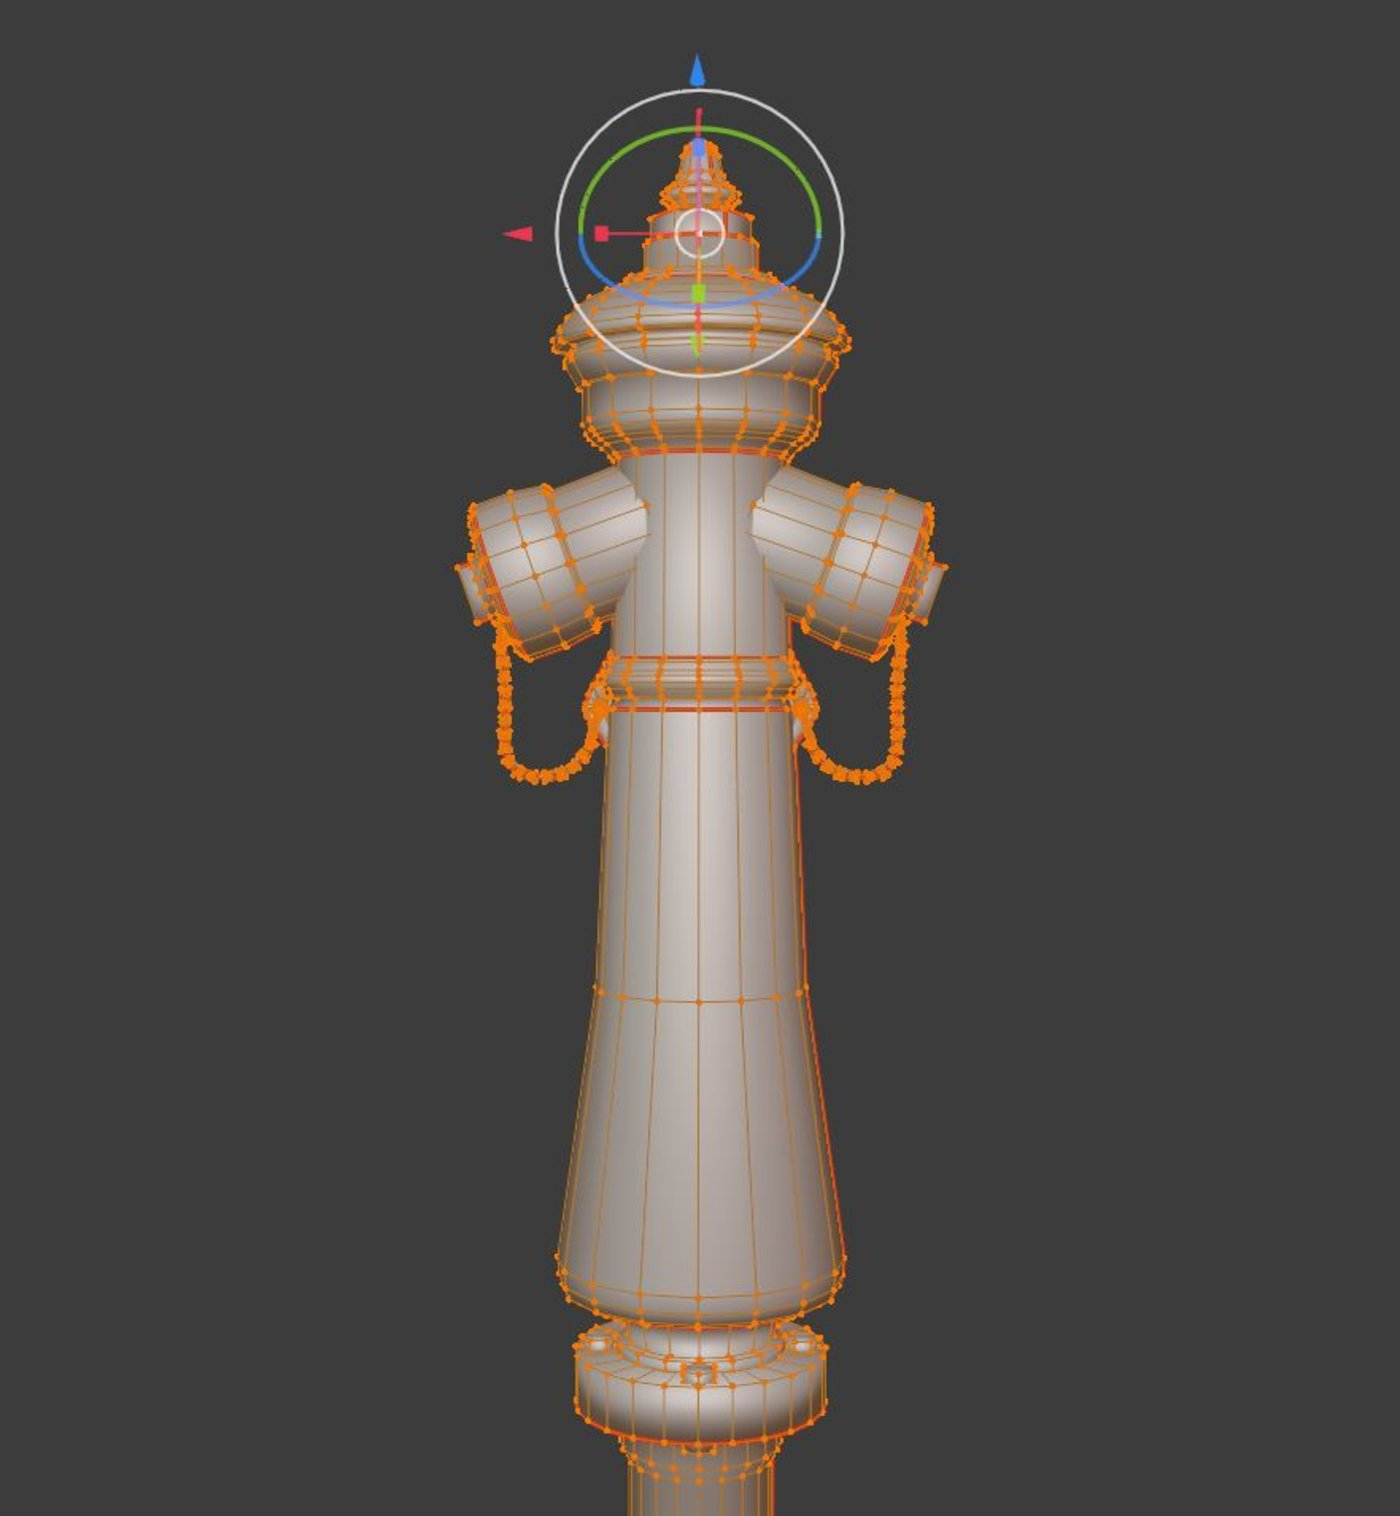 Low-Poly Fire Hydrant VAG NOVA 1885 Re-Textured in Blender-2.831